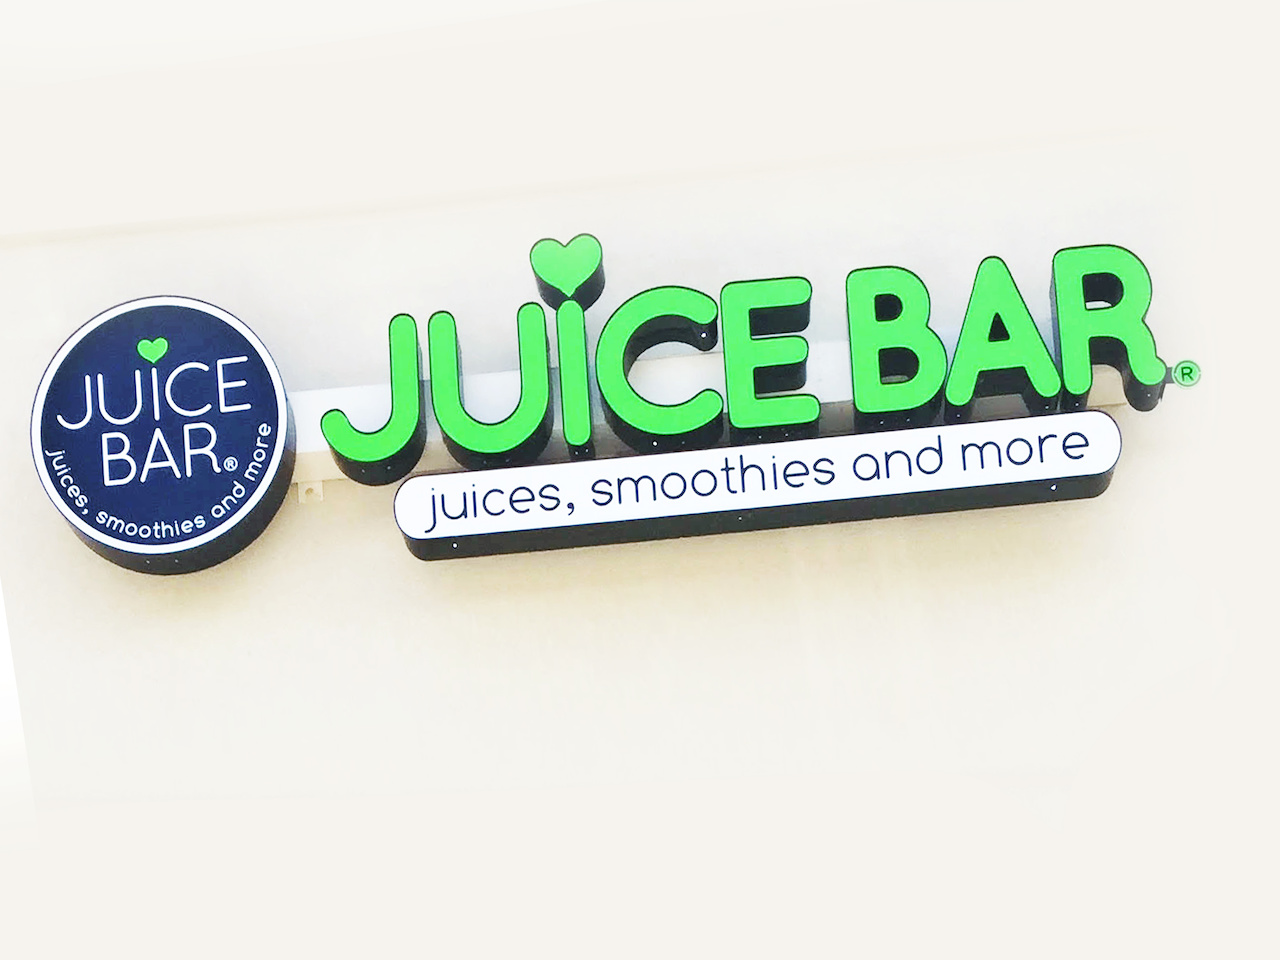 Get ready for a healthy and energizing meal at Juice Bar, where you won't leave feeling weighed down or sleepy!